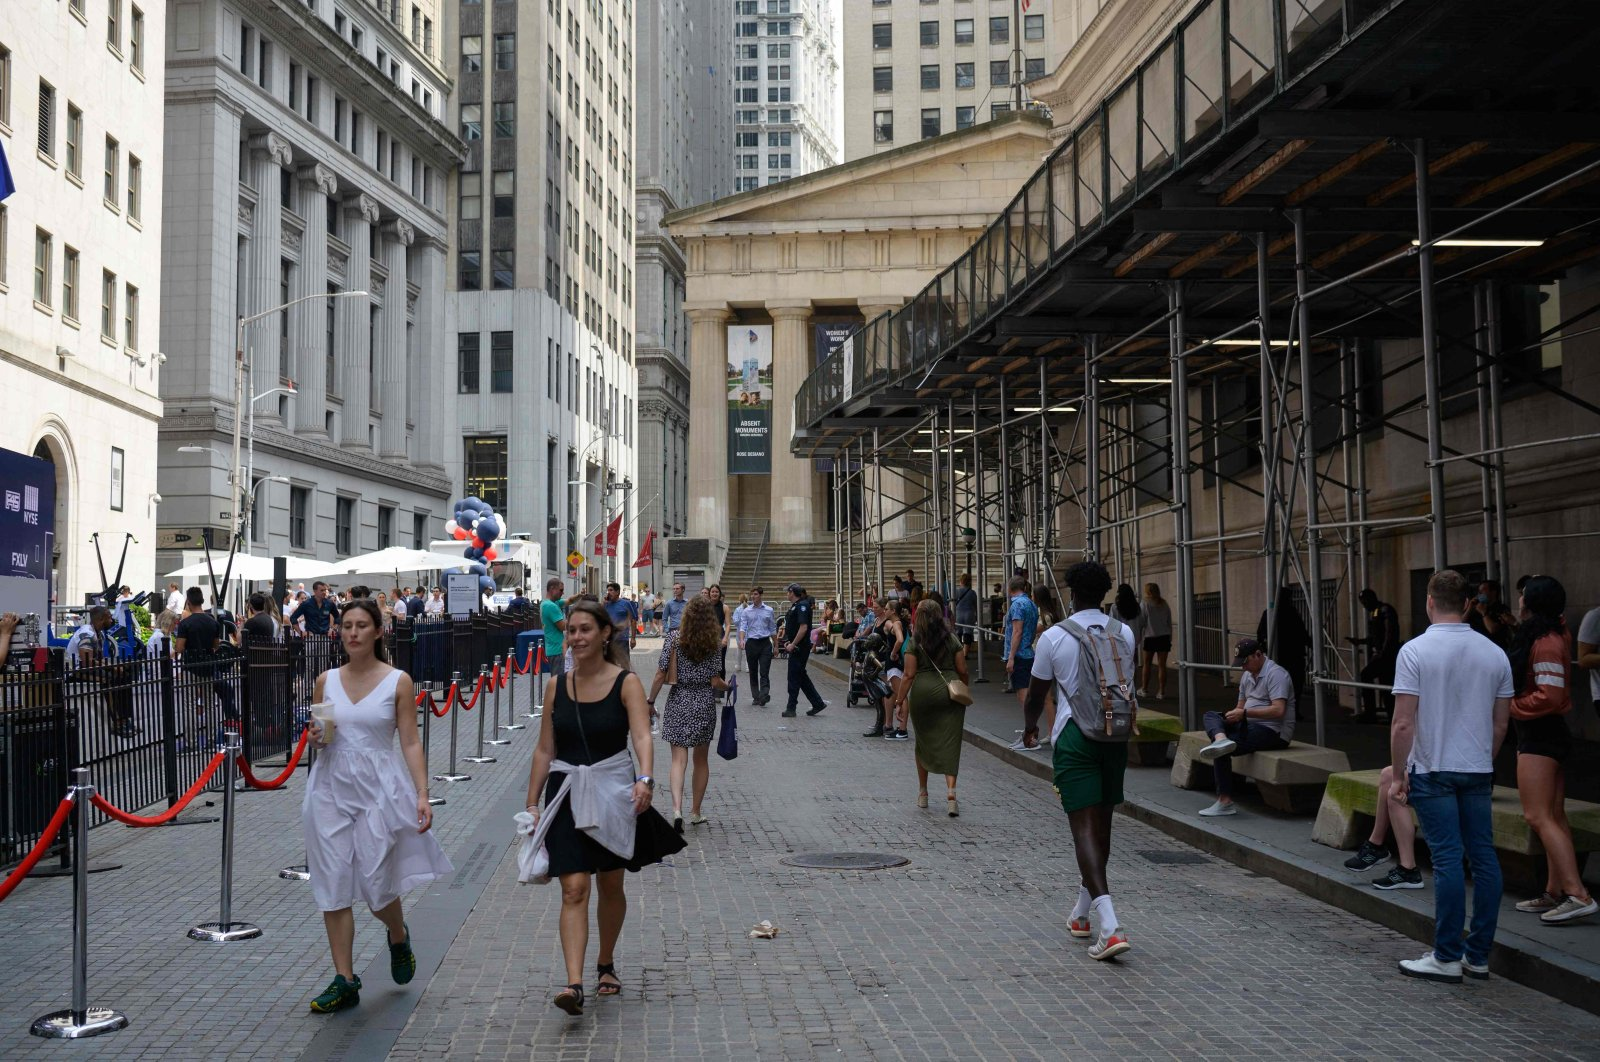 People walk past the New York Stock Exchange (NYSE) on Wall Street in New York City, U.S., July 15, 2021. (AFP Photo)